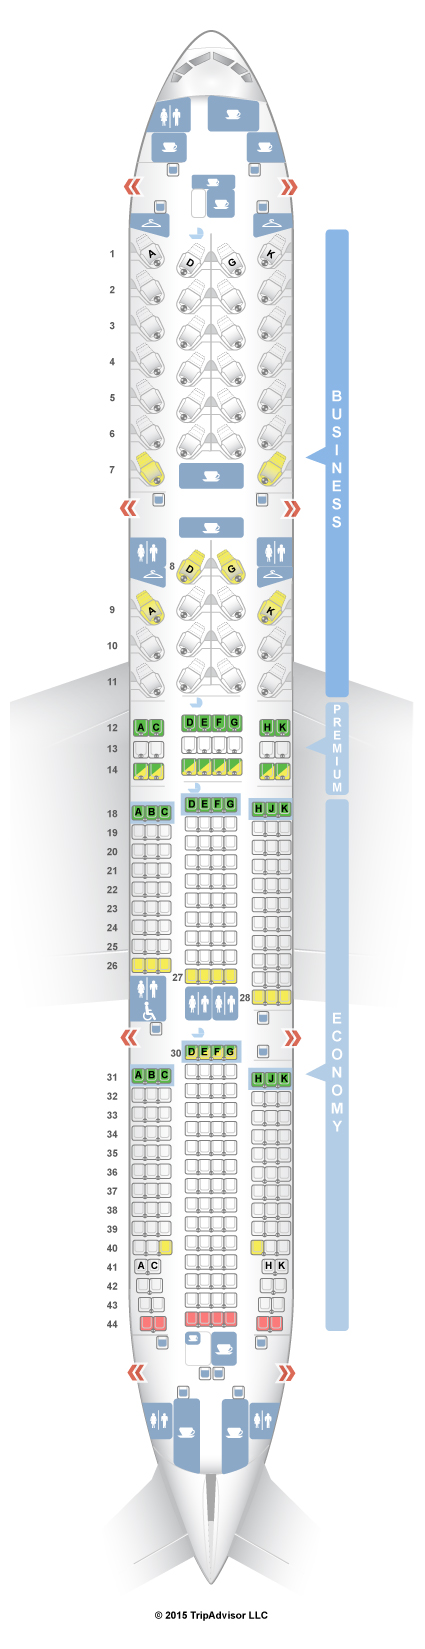 Boeing 787 8 Seat Map Air Canada - Best Seat 2018